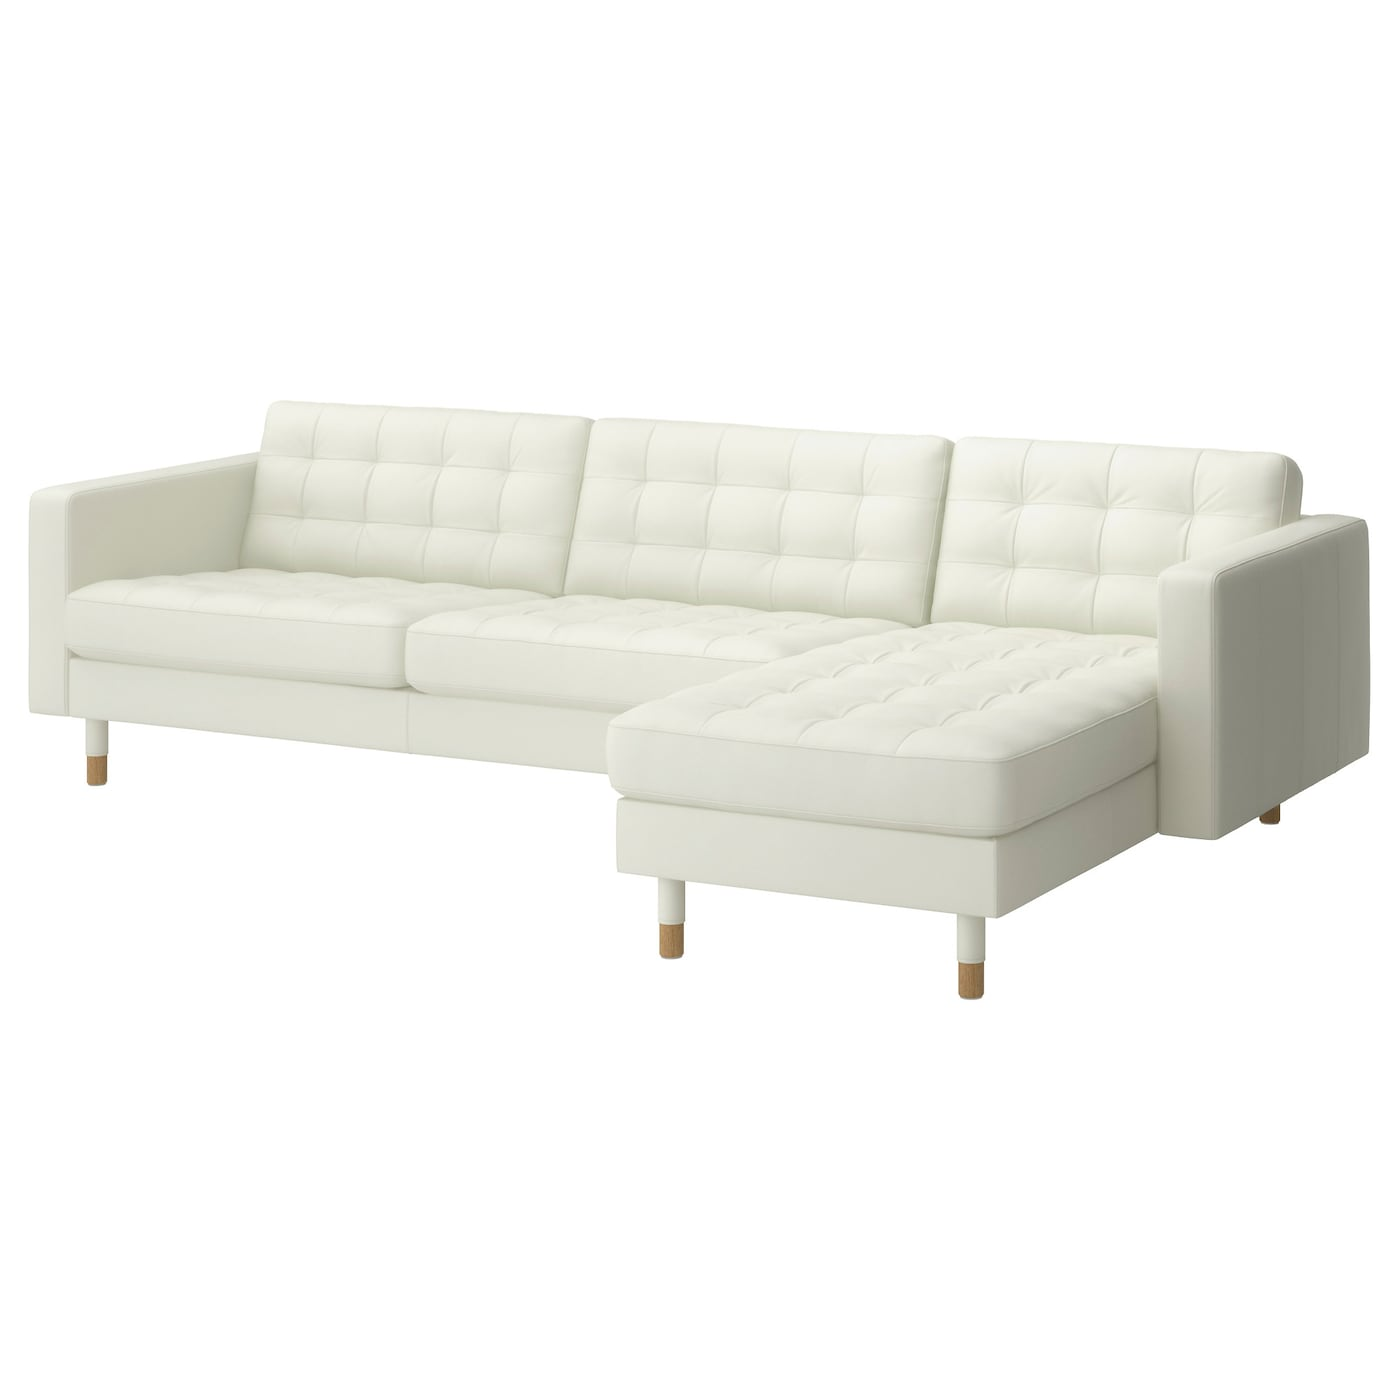 Landskrona 4 seat sofa with chaise longue grann bomstad - Sofa rinconera con chaise longue ...